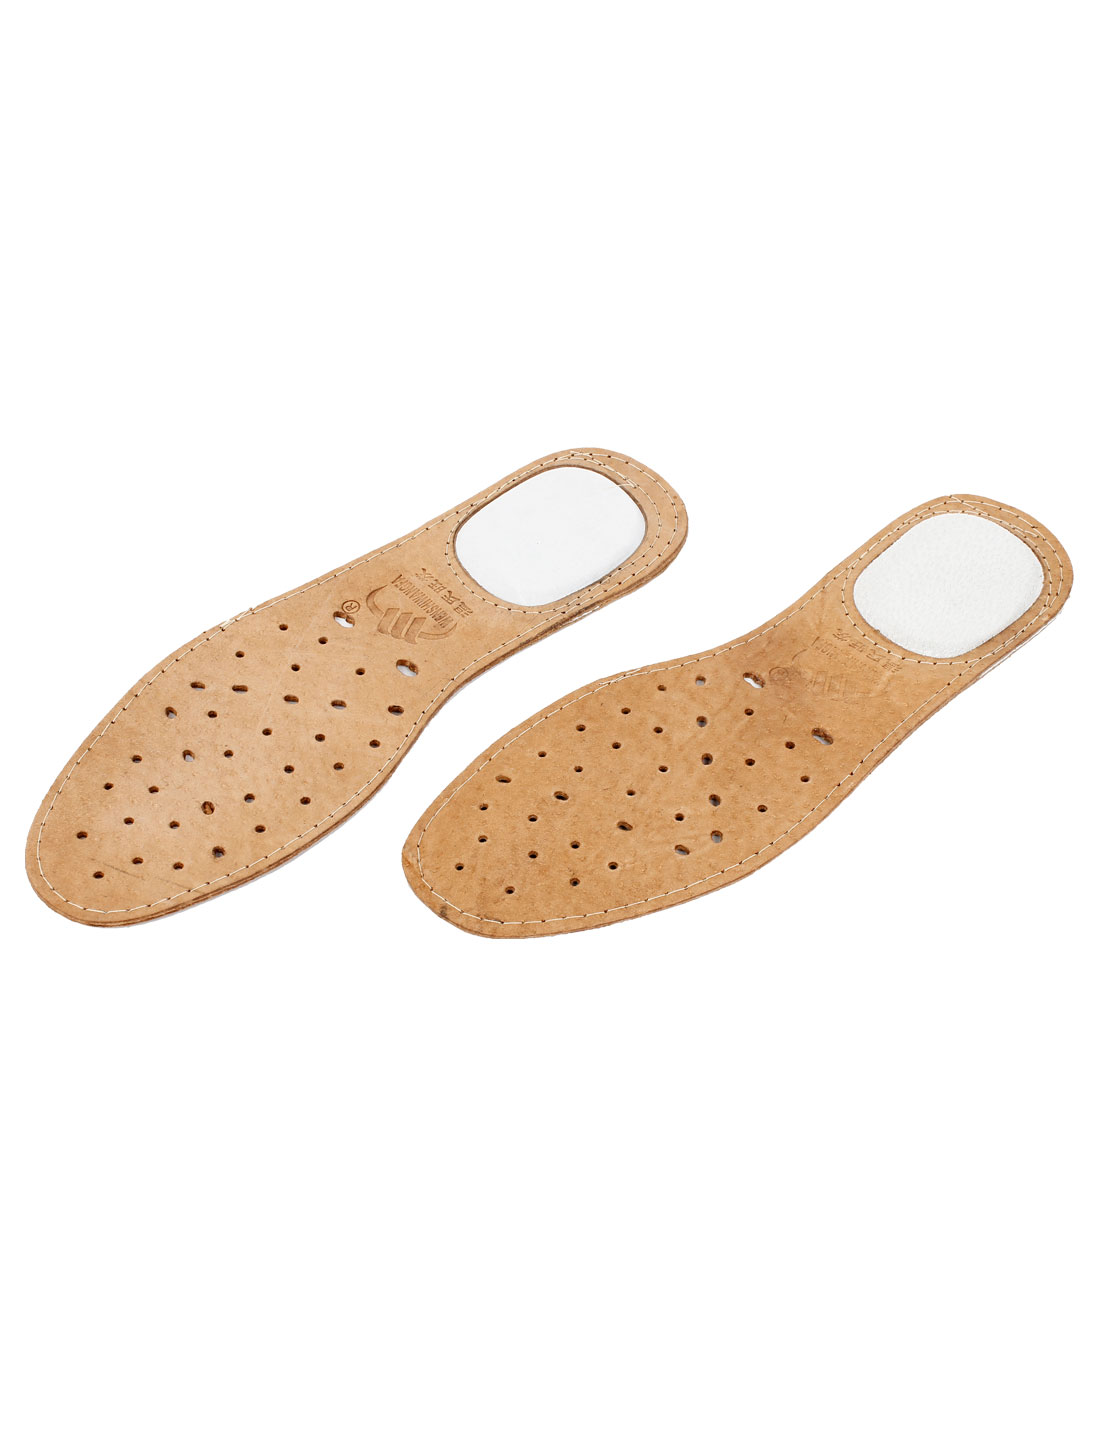 Pair Brown Faux Leather Hole Design Insoles Shoe Pads US 8.5 for Man